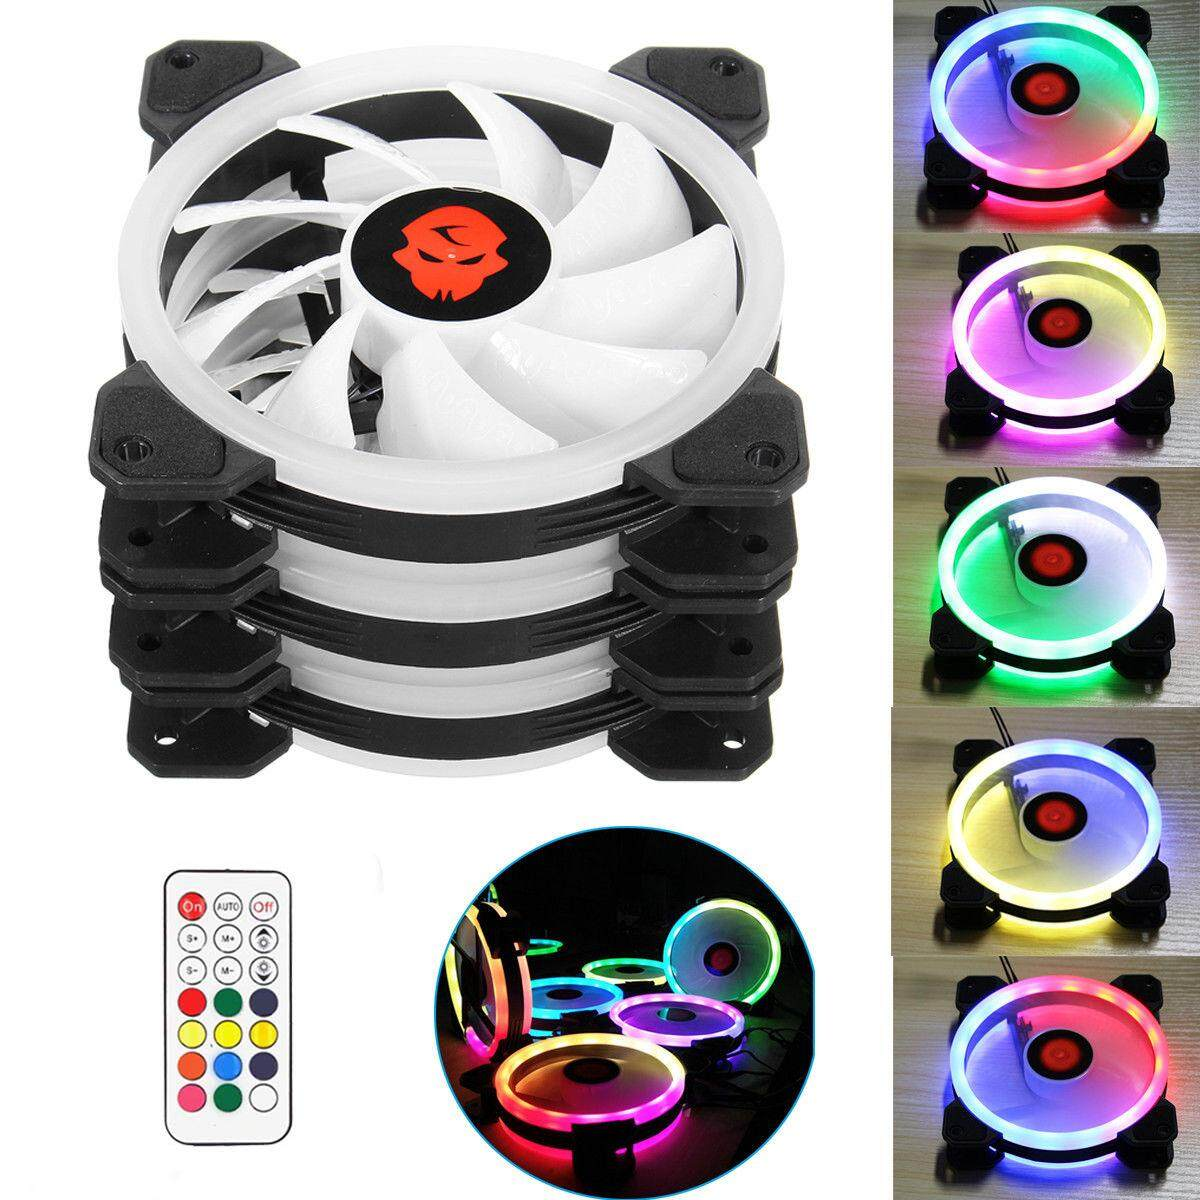 3 Fans Computer Case Fan 120mm Rgb Colorful Pc Cpu Cooling Fan Cooler Silent High Airflow With Rgb Controller By Chaoshihui.